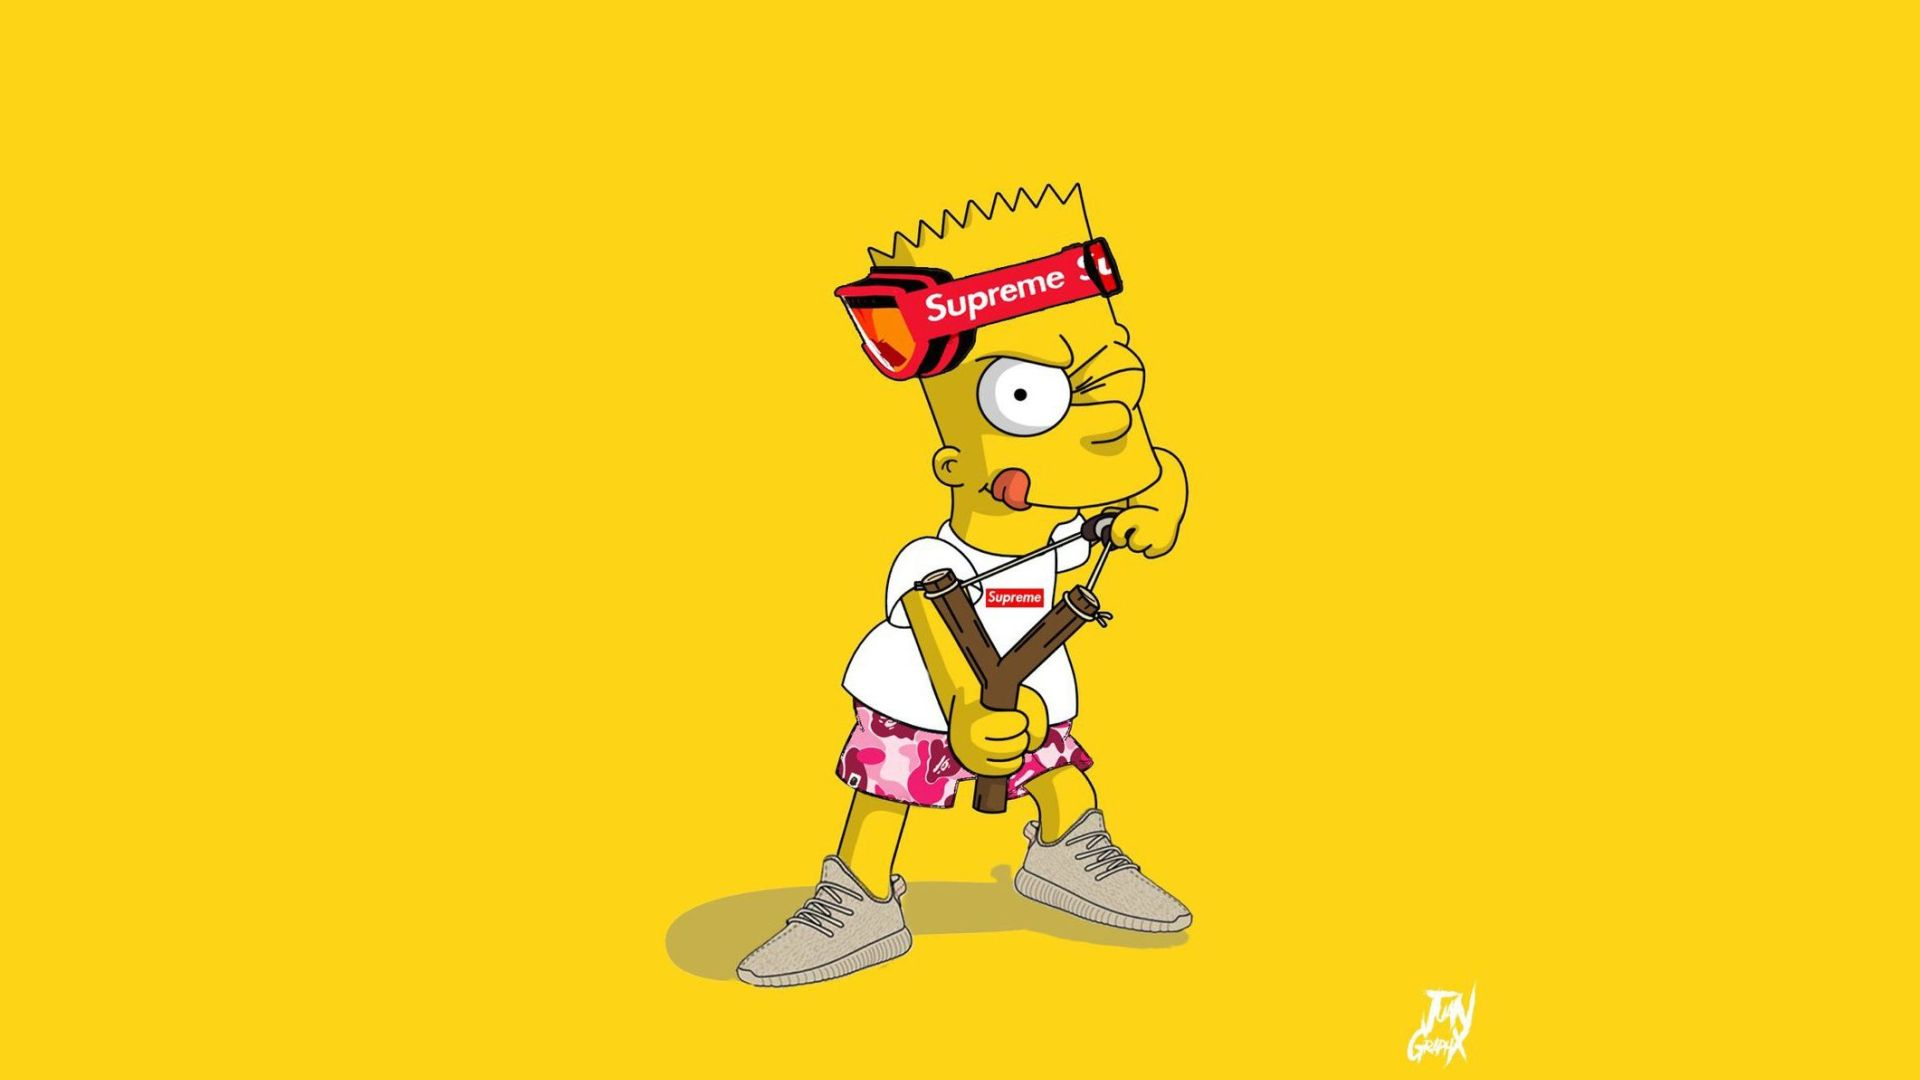 Bart Supreme Wallpaper – How to Use Wallpaper